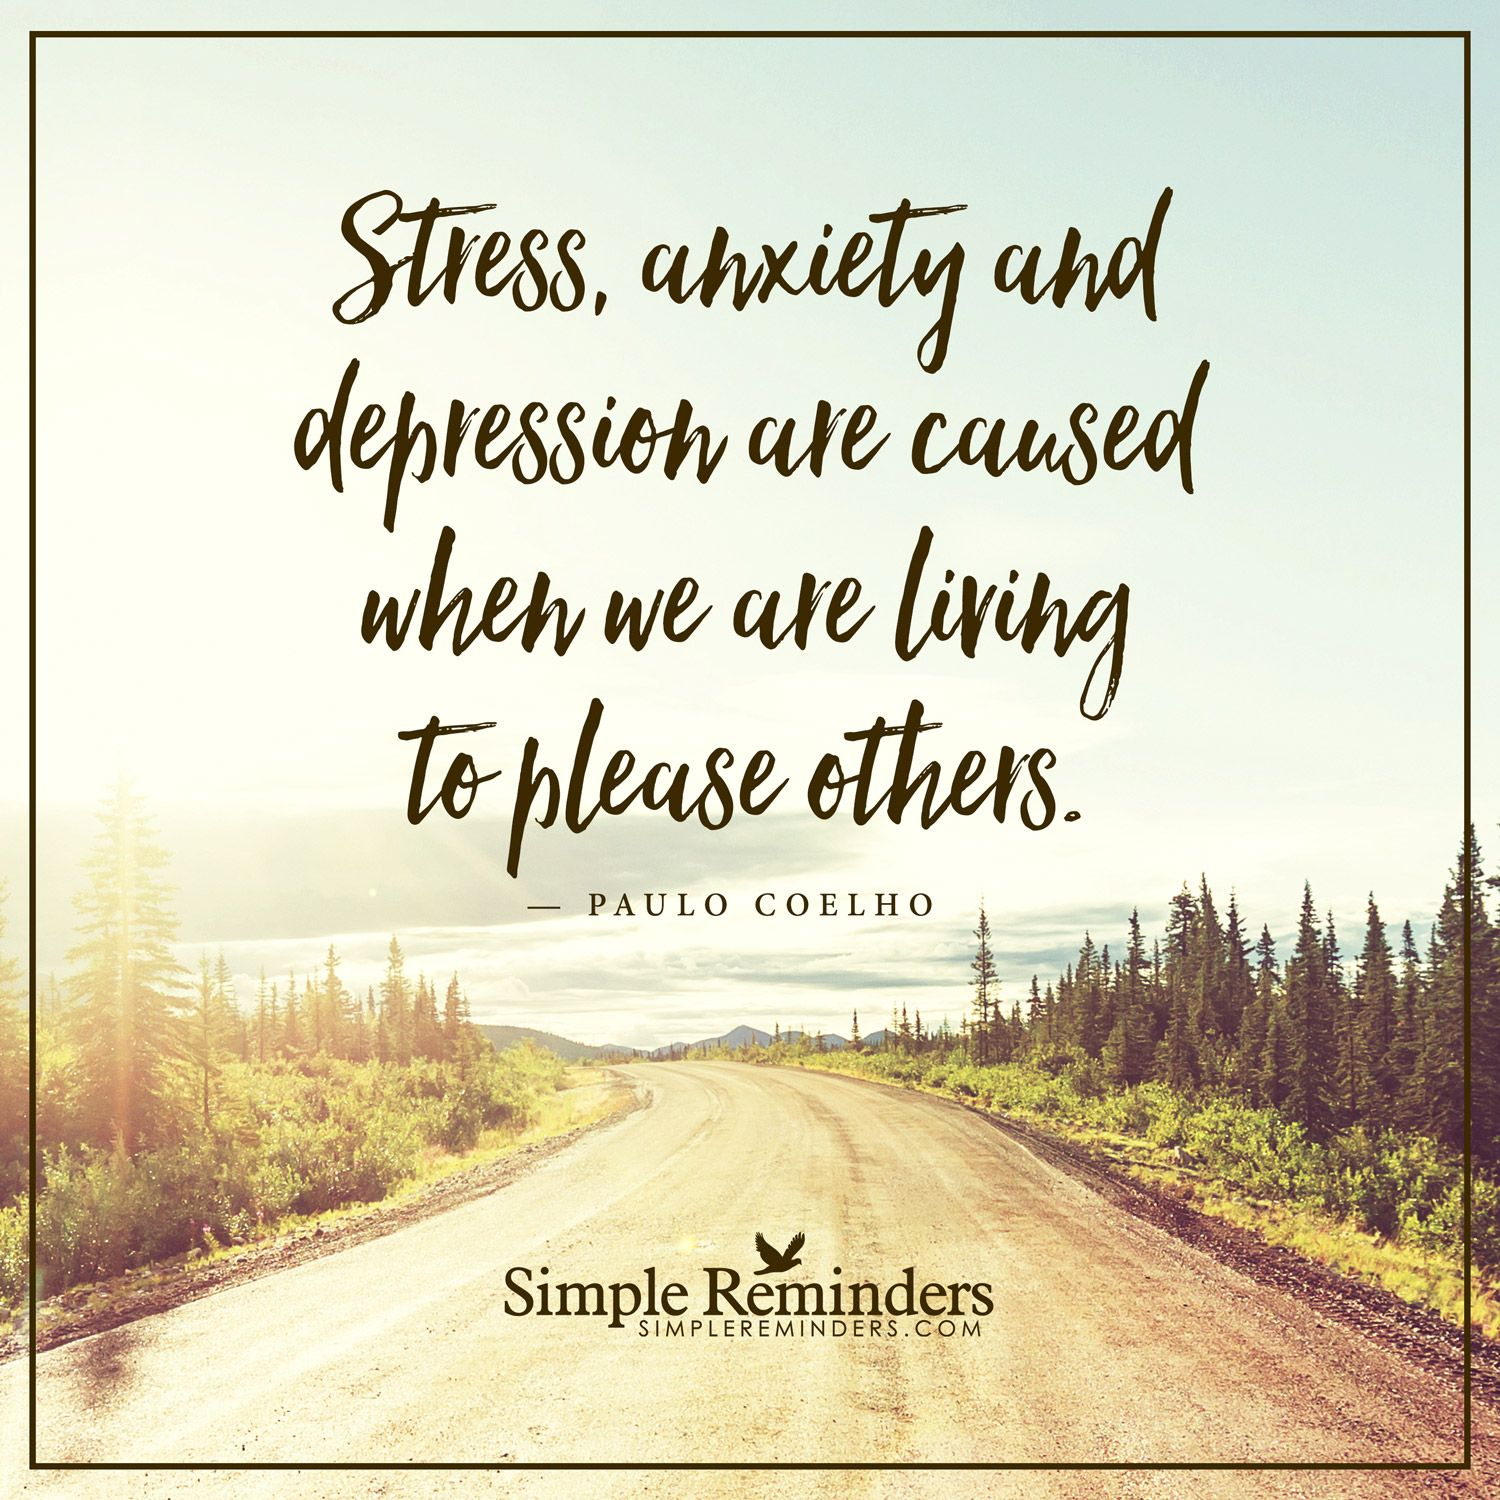 Quotes To Help With Anxiety Stress Is Causedstress Anxiety And Depression Are Caused When